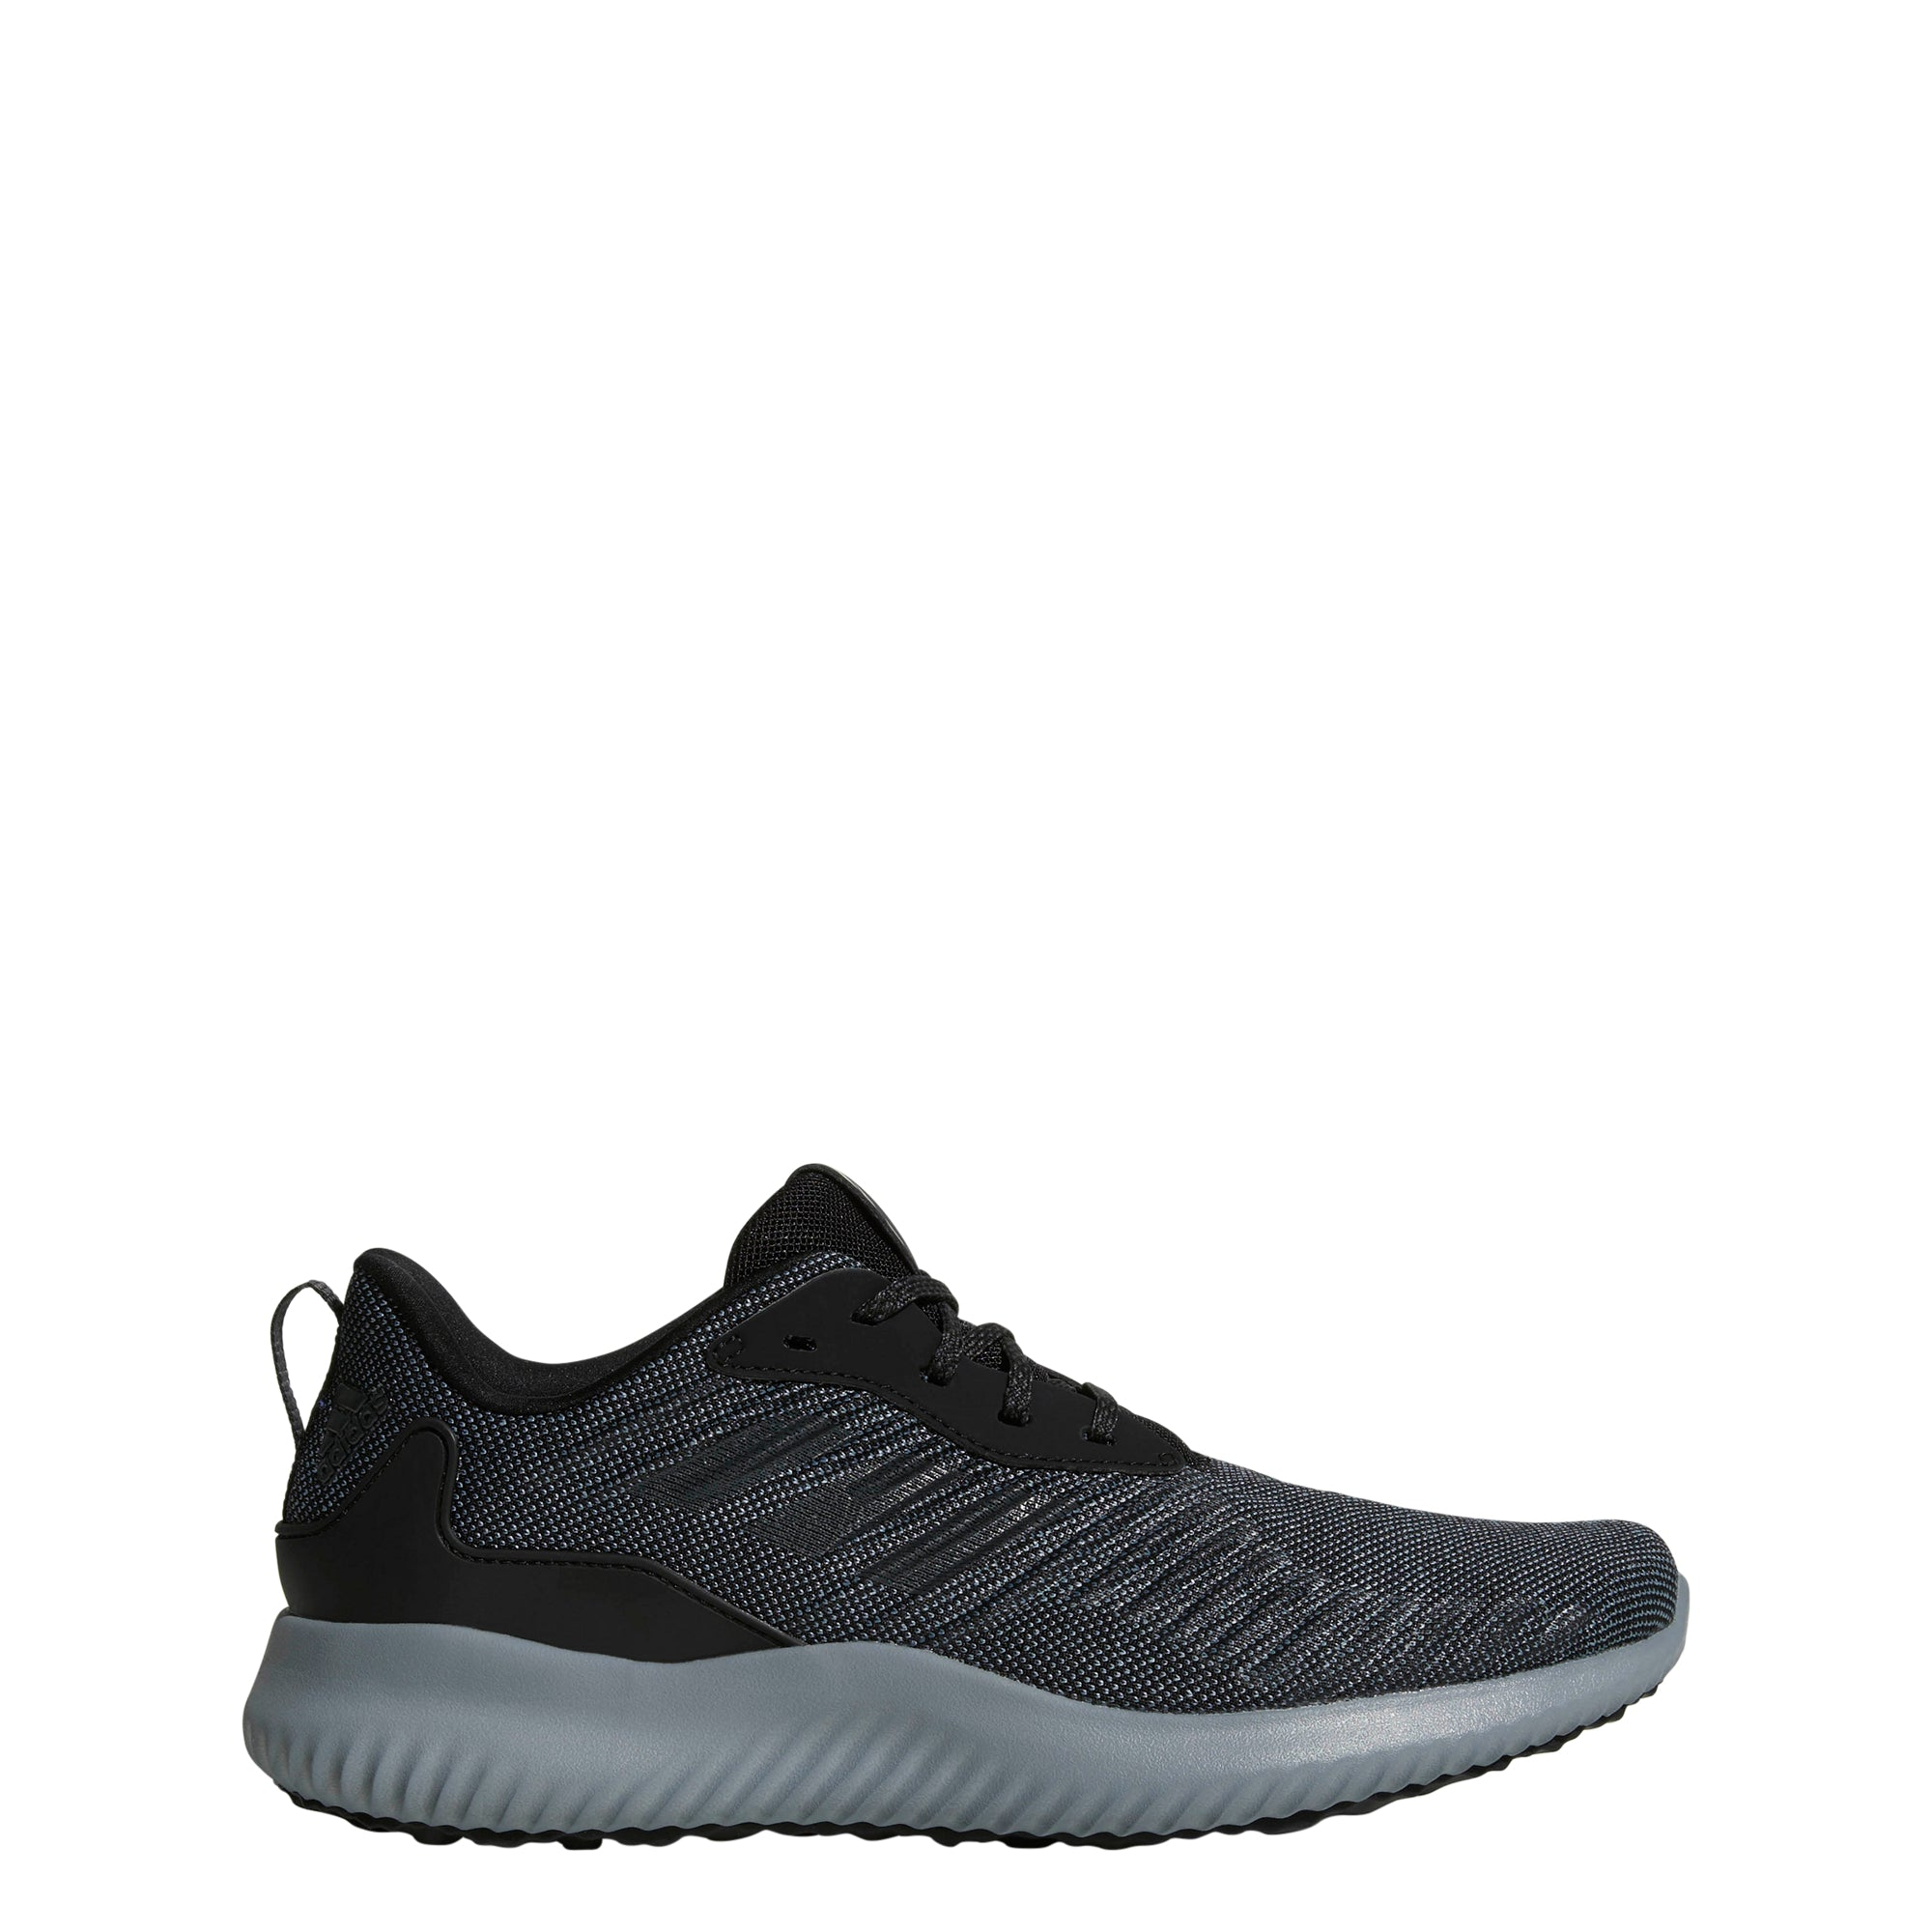 1477d7af0eede Buy adidas Men Alphabounce rc m Running Shoes